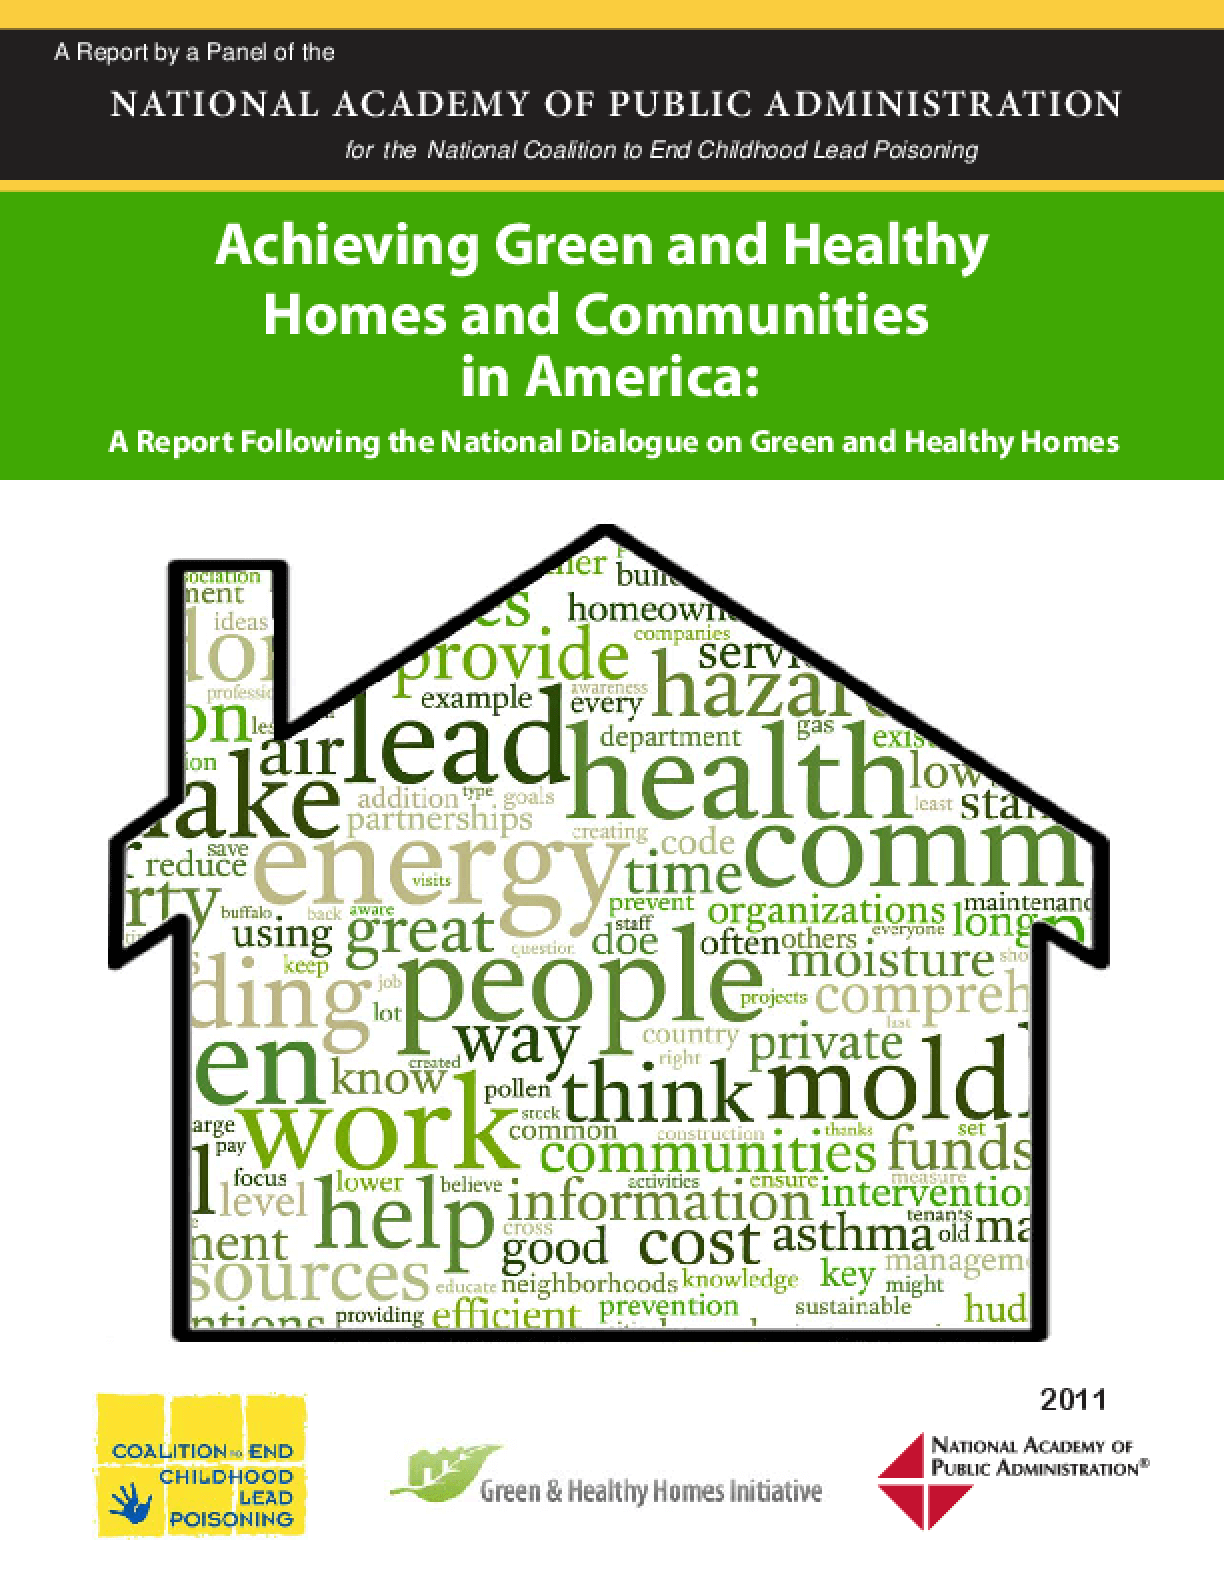 Achieving Green and Healthy Homes and Communities in America